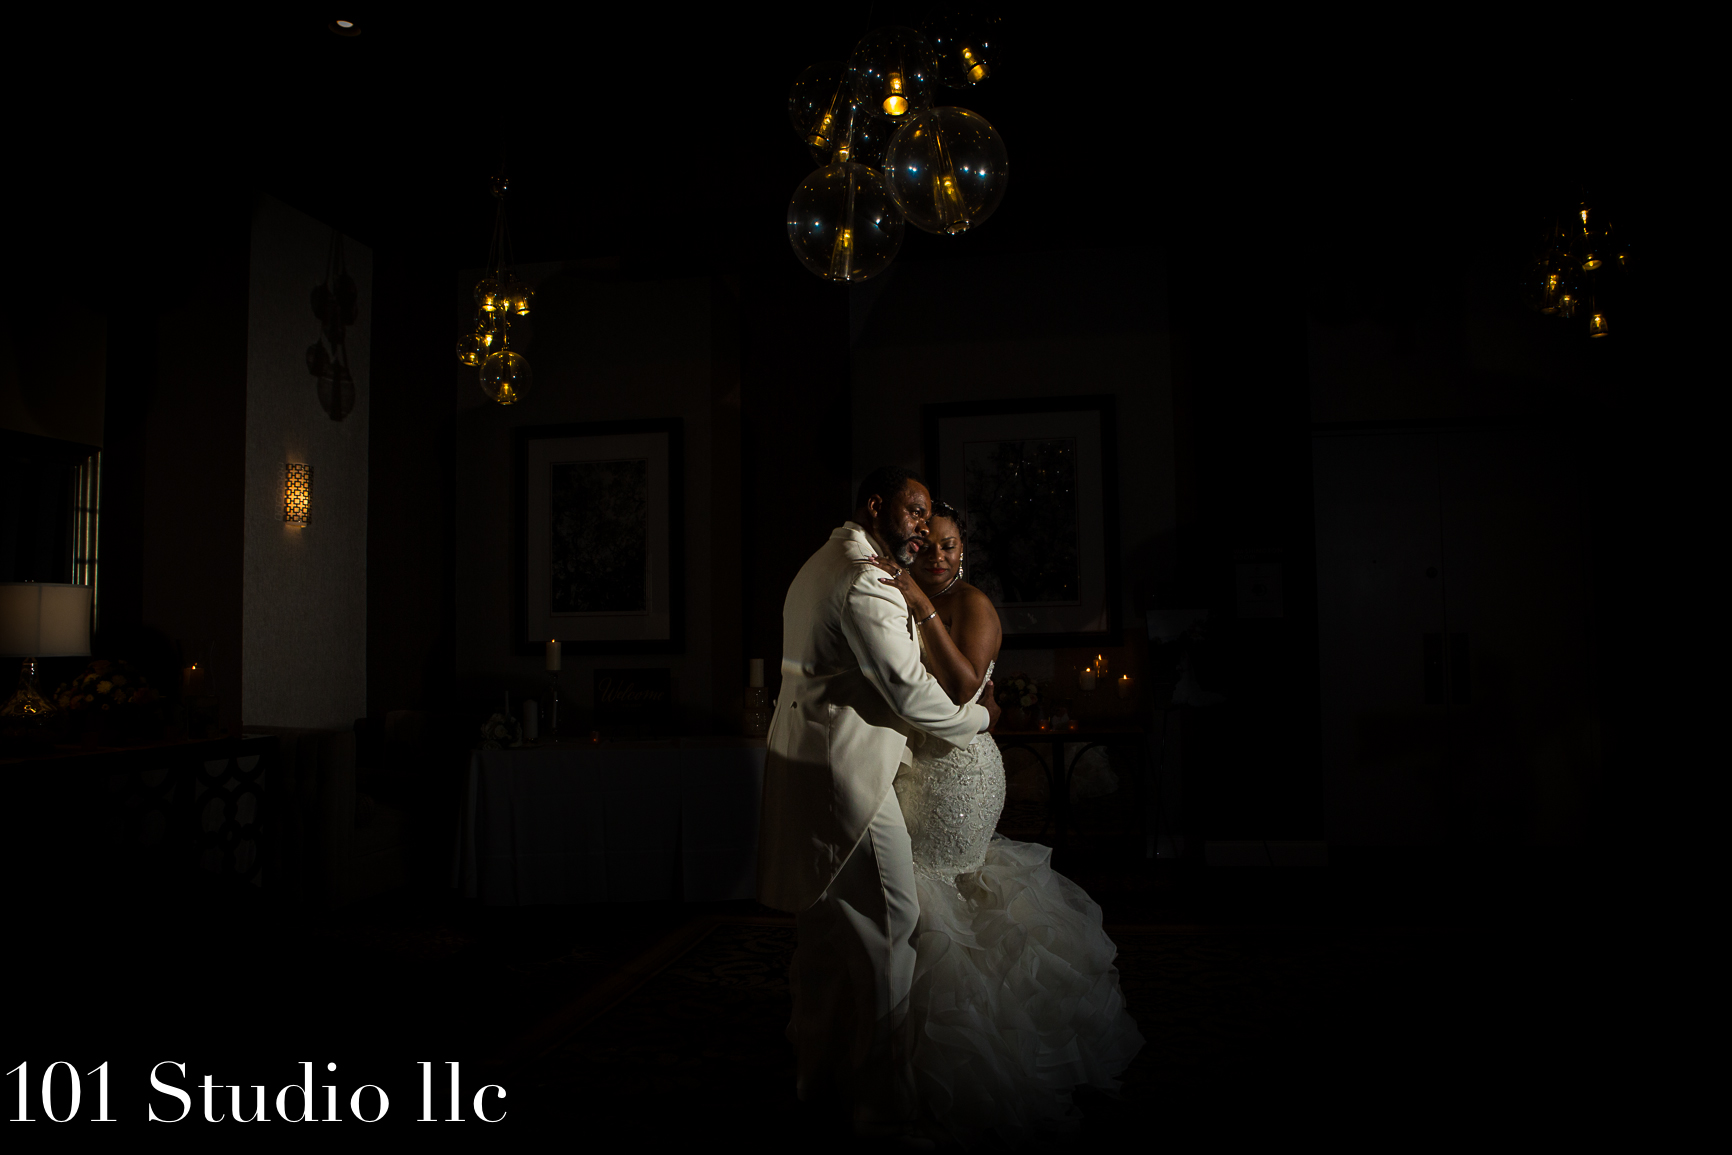 Double Tree Hilton Raleigh wedding venue - 101 studio llc -30.jpg